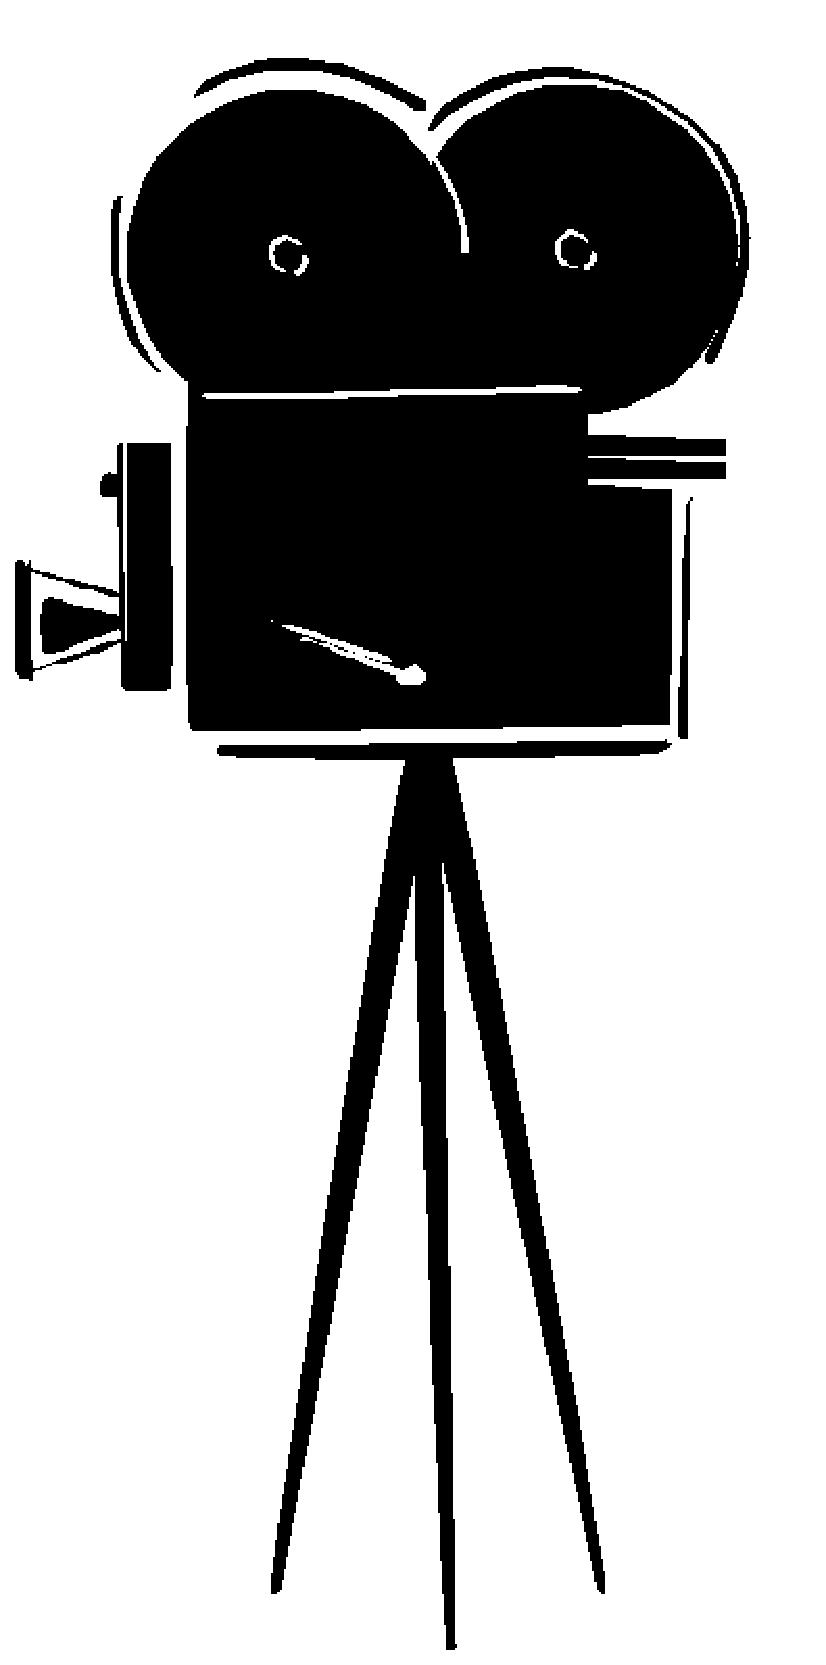 Cinema camera clipart clipart images gallery for free.